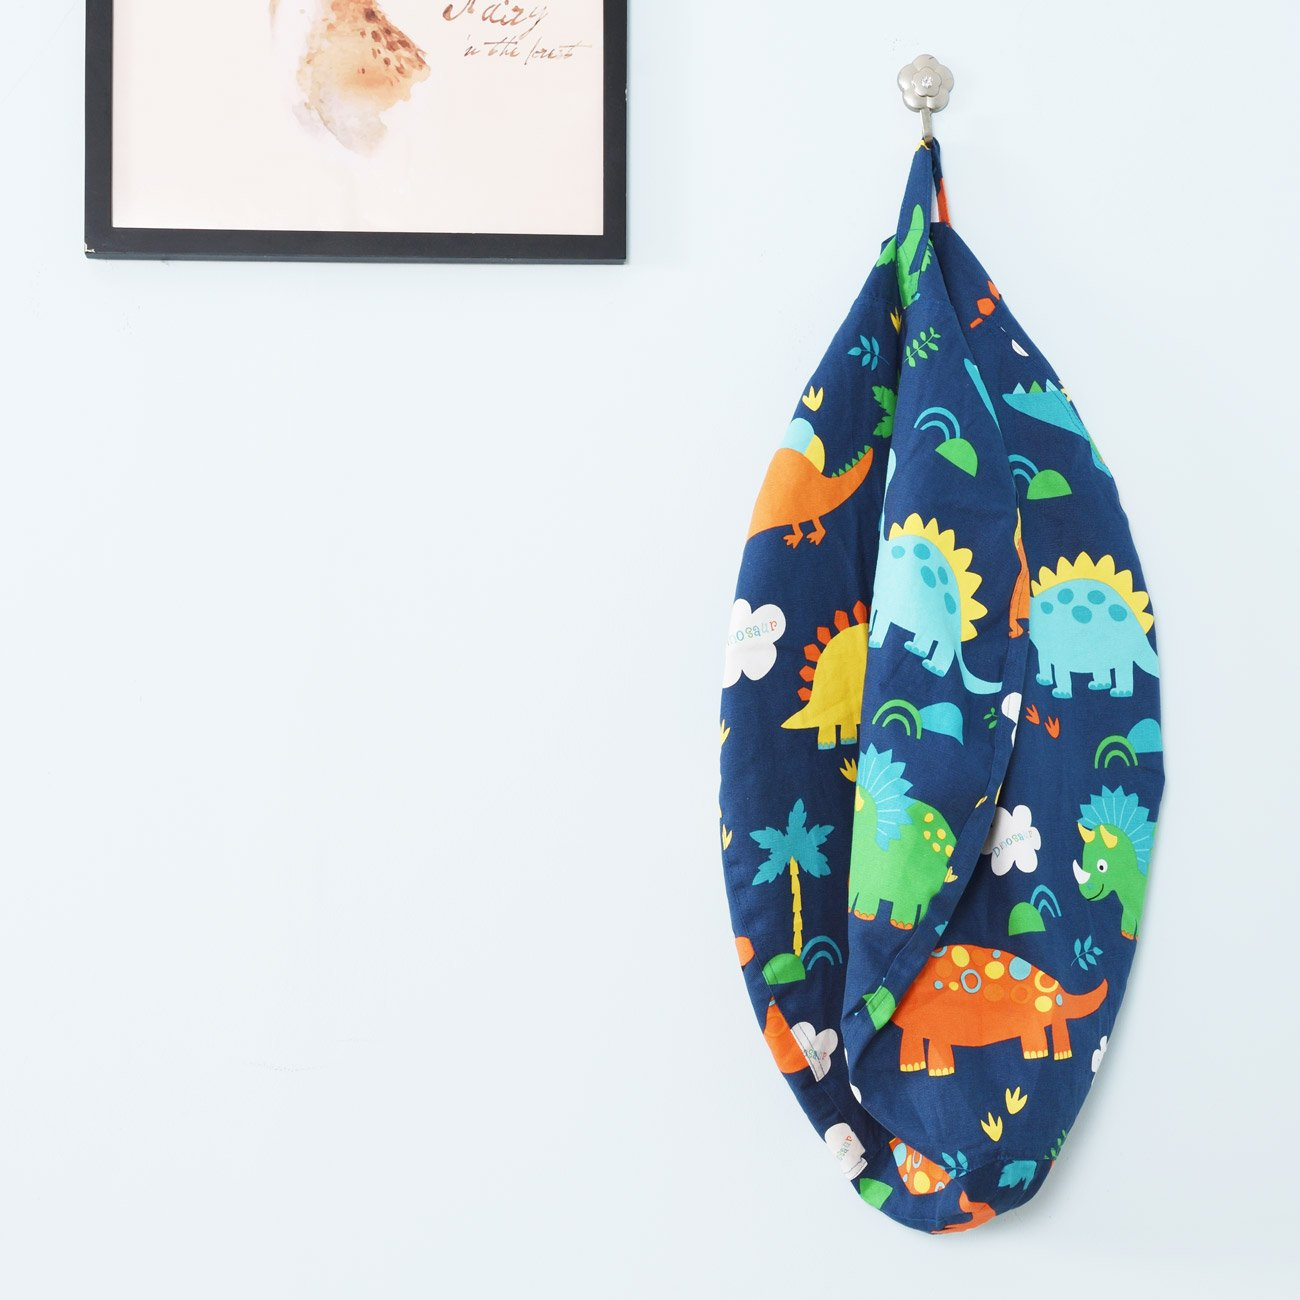 BROLEX 27'' Stuffed Animals Bean Bag Chair Cover-100% Cotton Canvas Kids Toy Storage Zipper Bags Comfy Pouf for Unisex Boys Girls Toddlar, Dinosaur Print by BROLEX (Image #6)